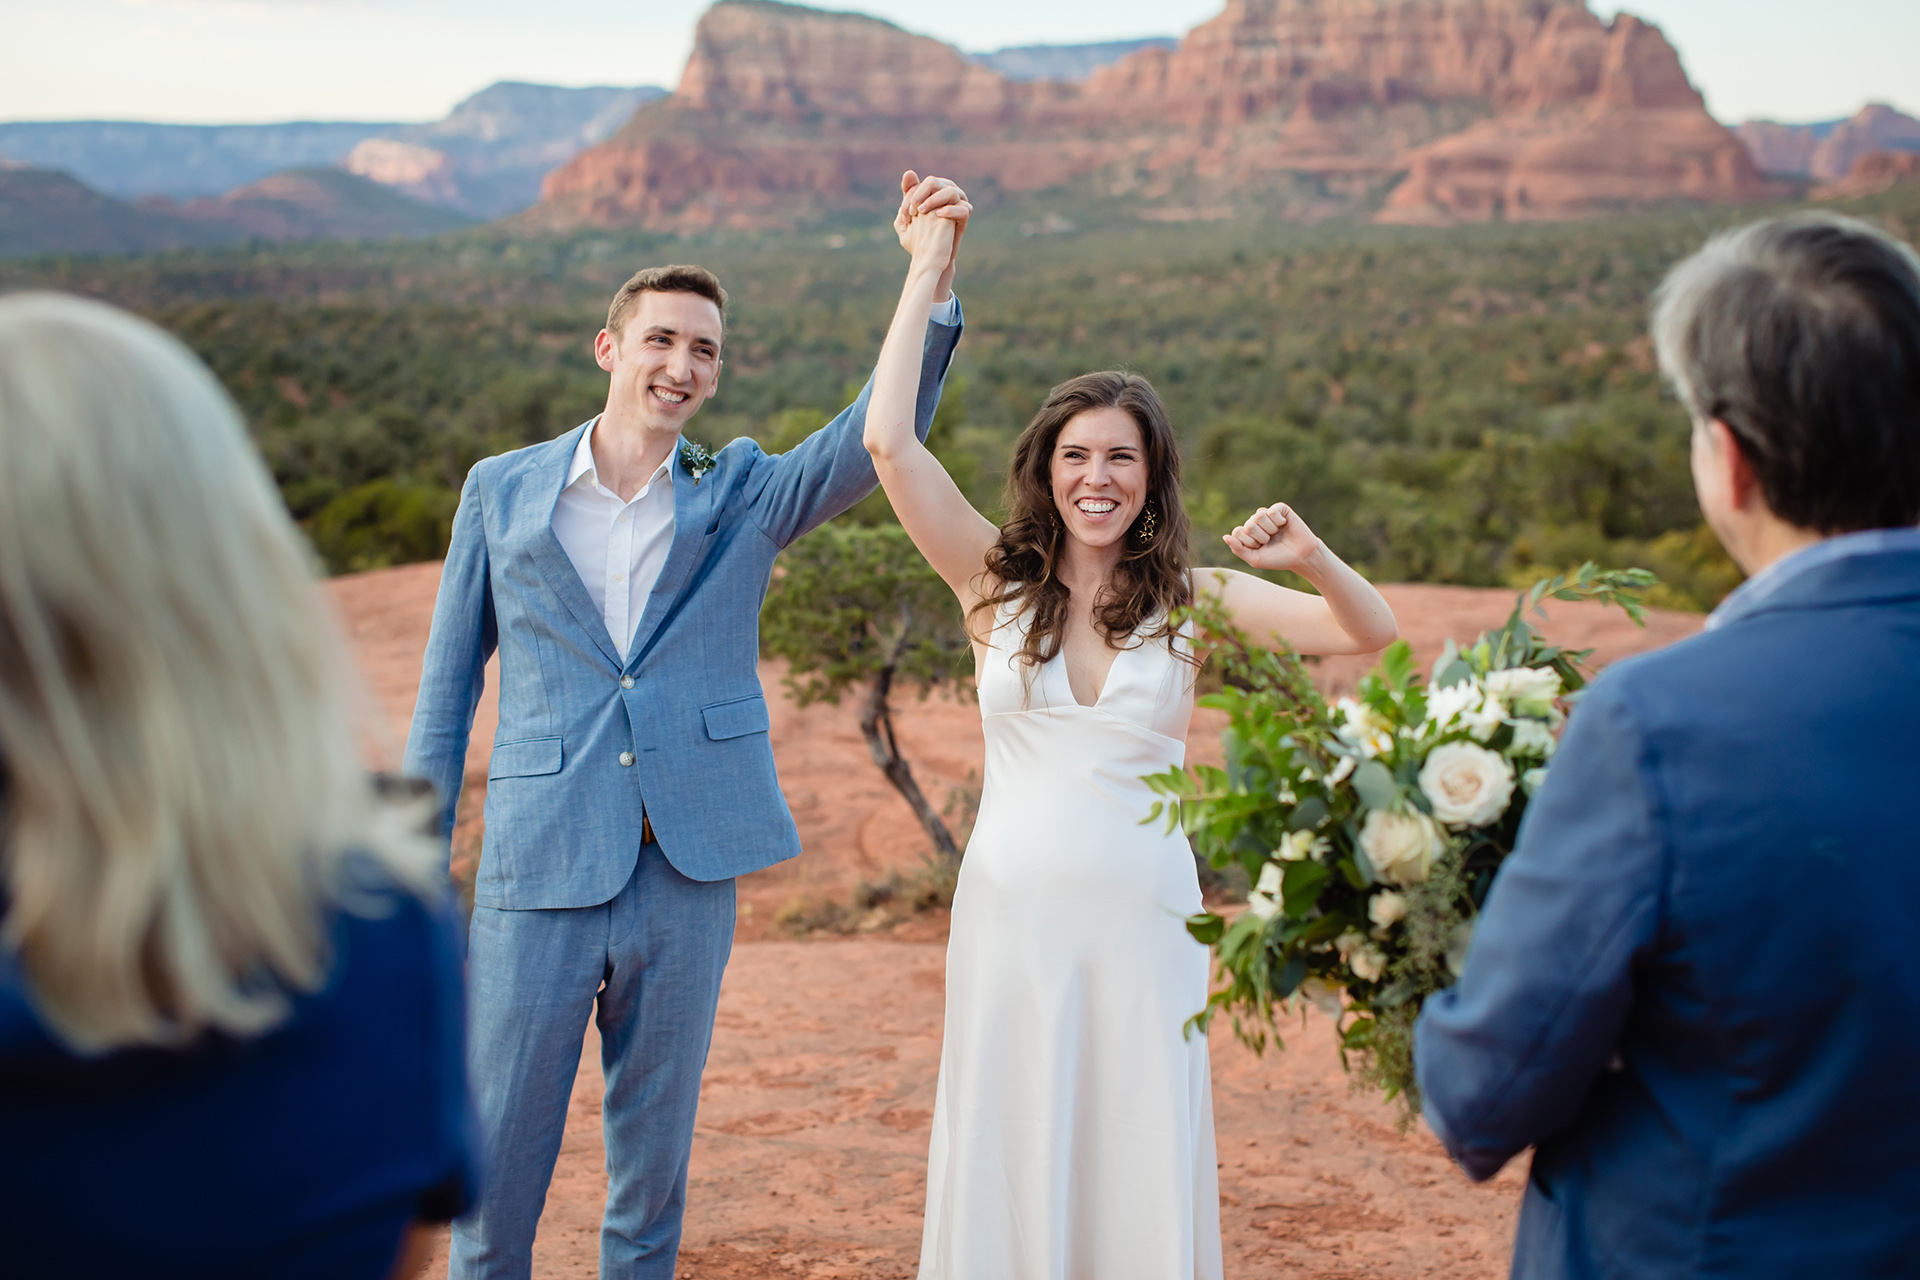 Best Wedding Photographers of Sedona, Arizona | After the ceremony is complete, the bride and groom clasp hands